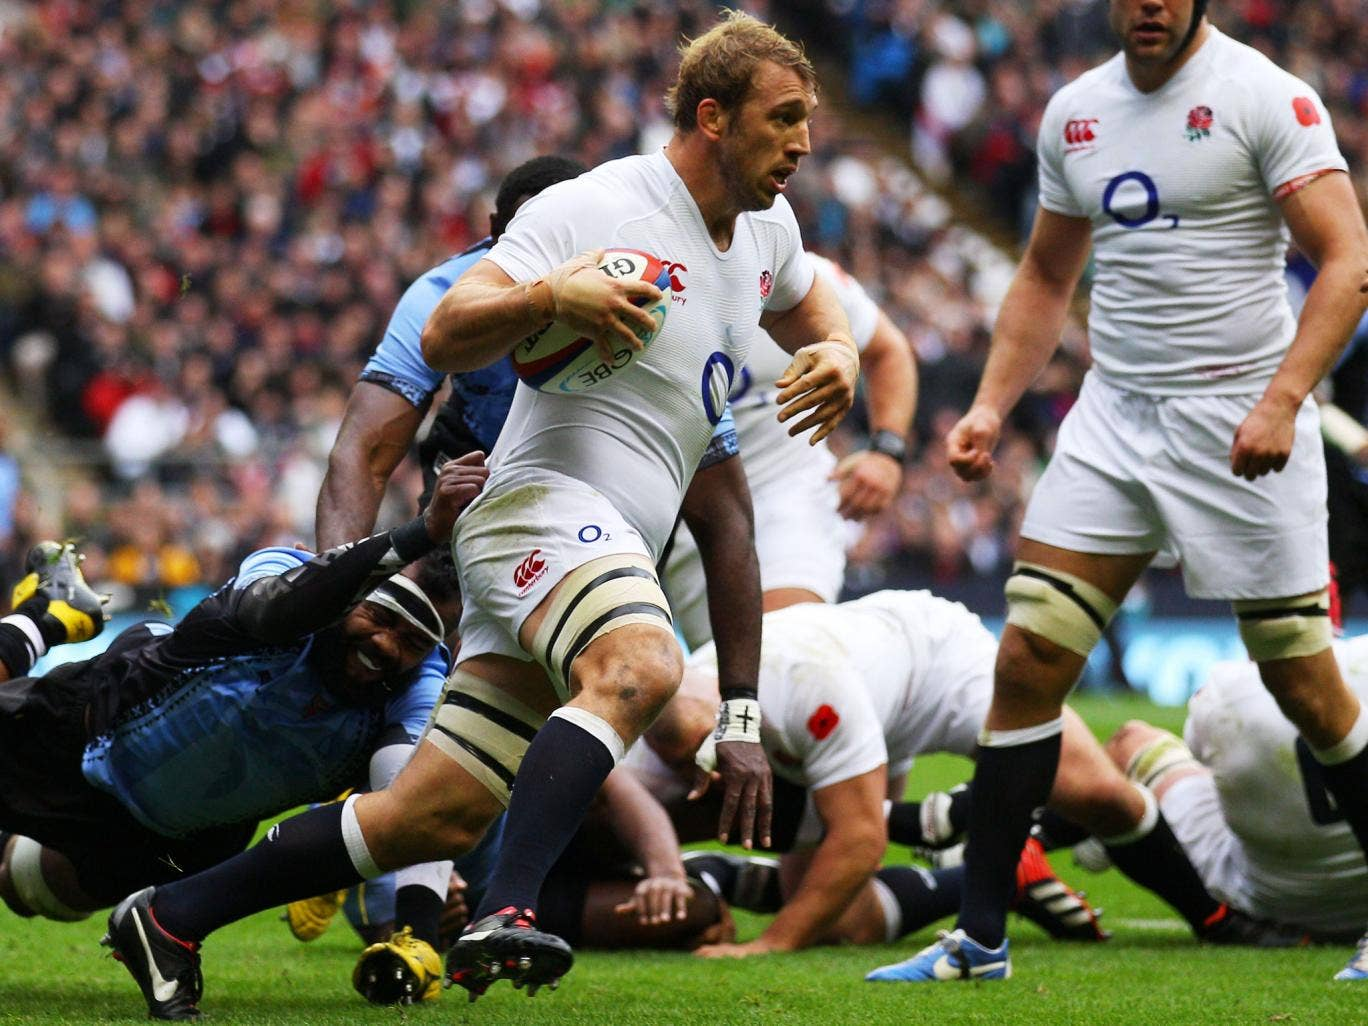 Chris Robshaw was a surprise choice as England captain despite Harlequins' success in 2012 but he has now led his country 16 times